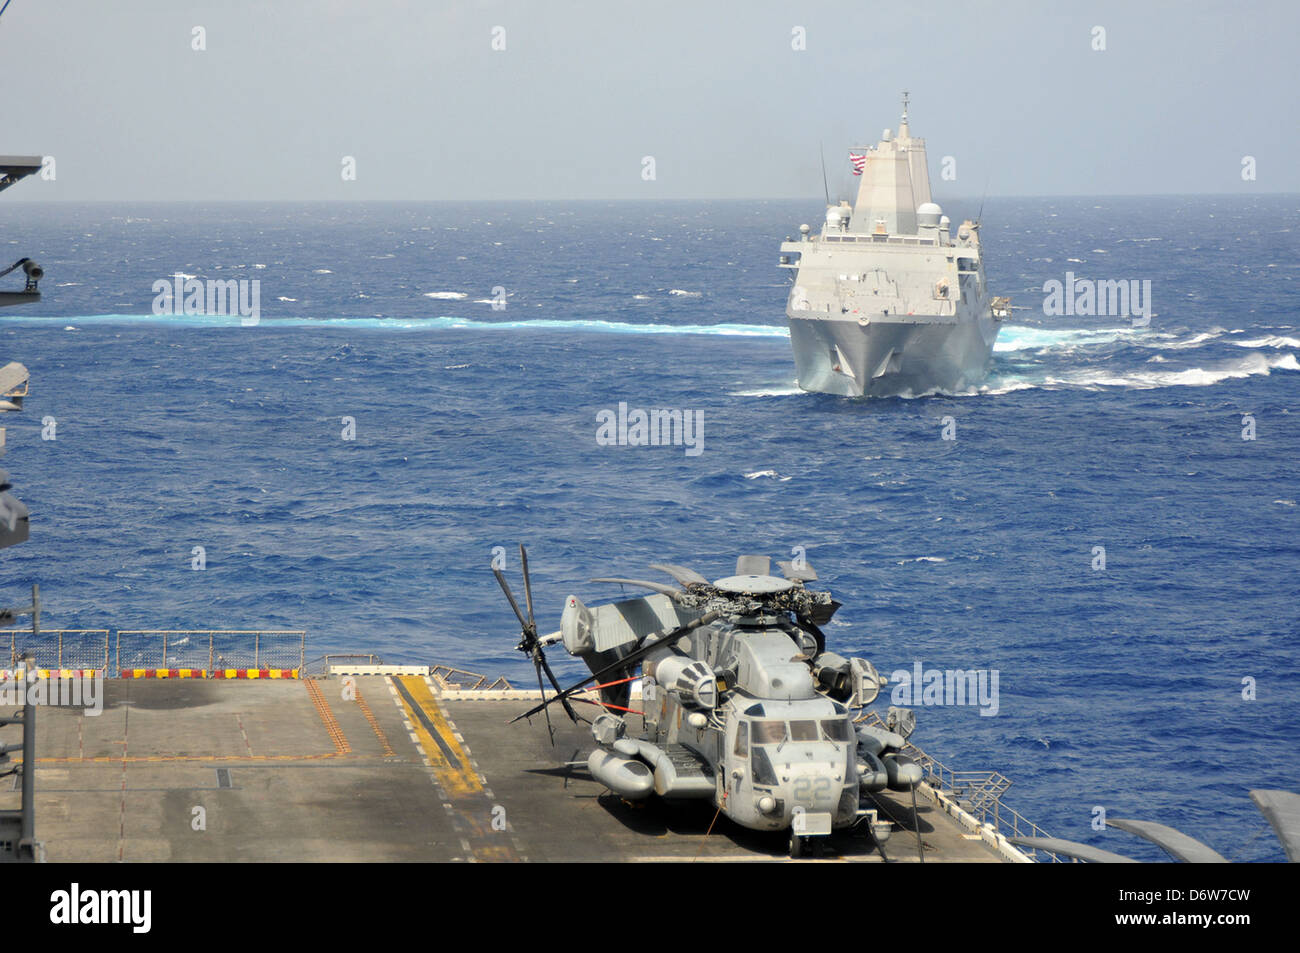 US Navy Amphibious dock ship USS Green Bay during operations April 23, 2013 in the Pacific Ocean. - Stock Image